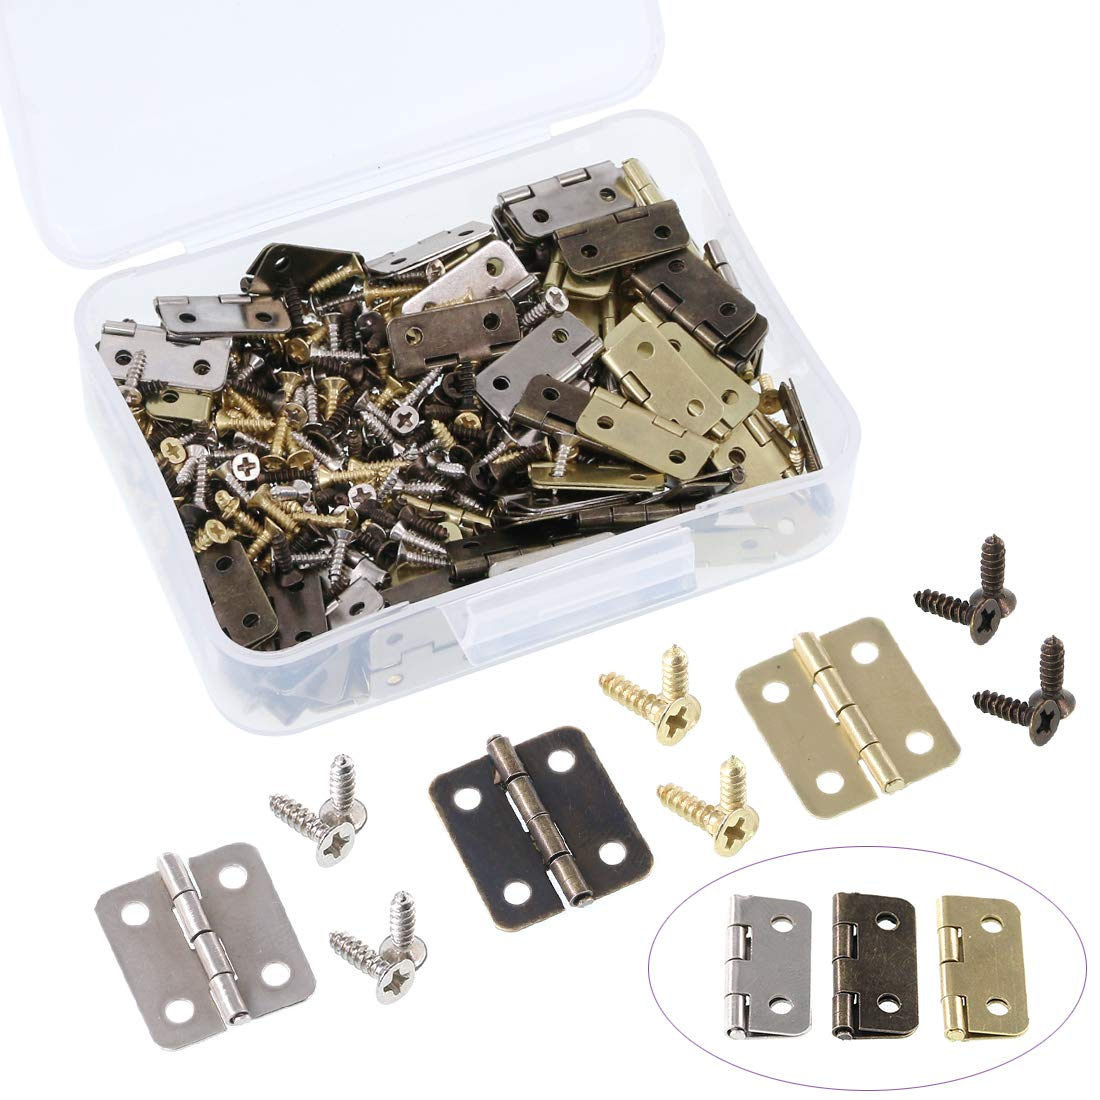 Swpeet 90Pcs 3 Colors Antique Mini Hinges with 360Pcs Replacement Hinge Screw, Metal Hasp Cabinet Latch Hasp with Screws for Wooden Jewelry Box Cabinet Decorative - Gold, Bronze, Black